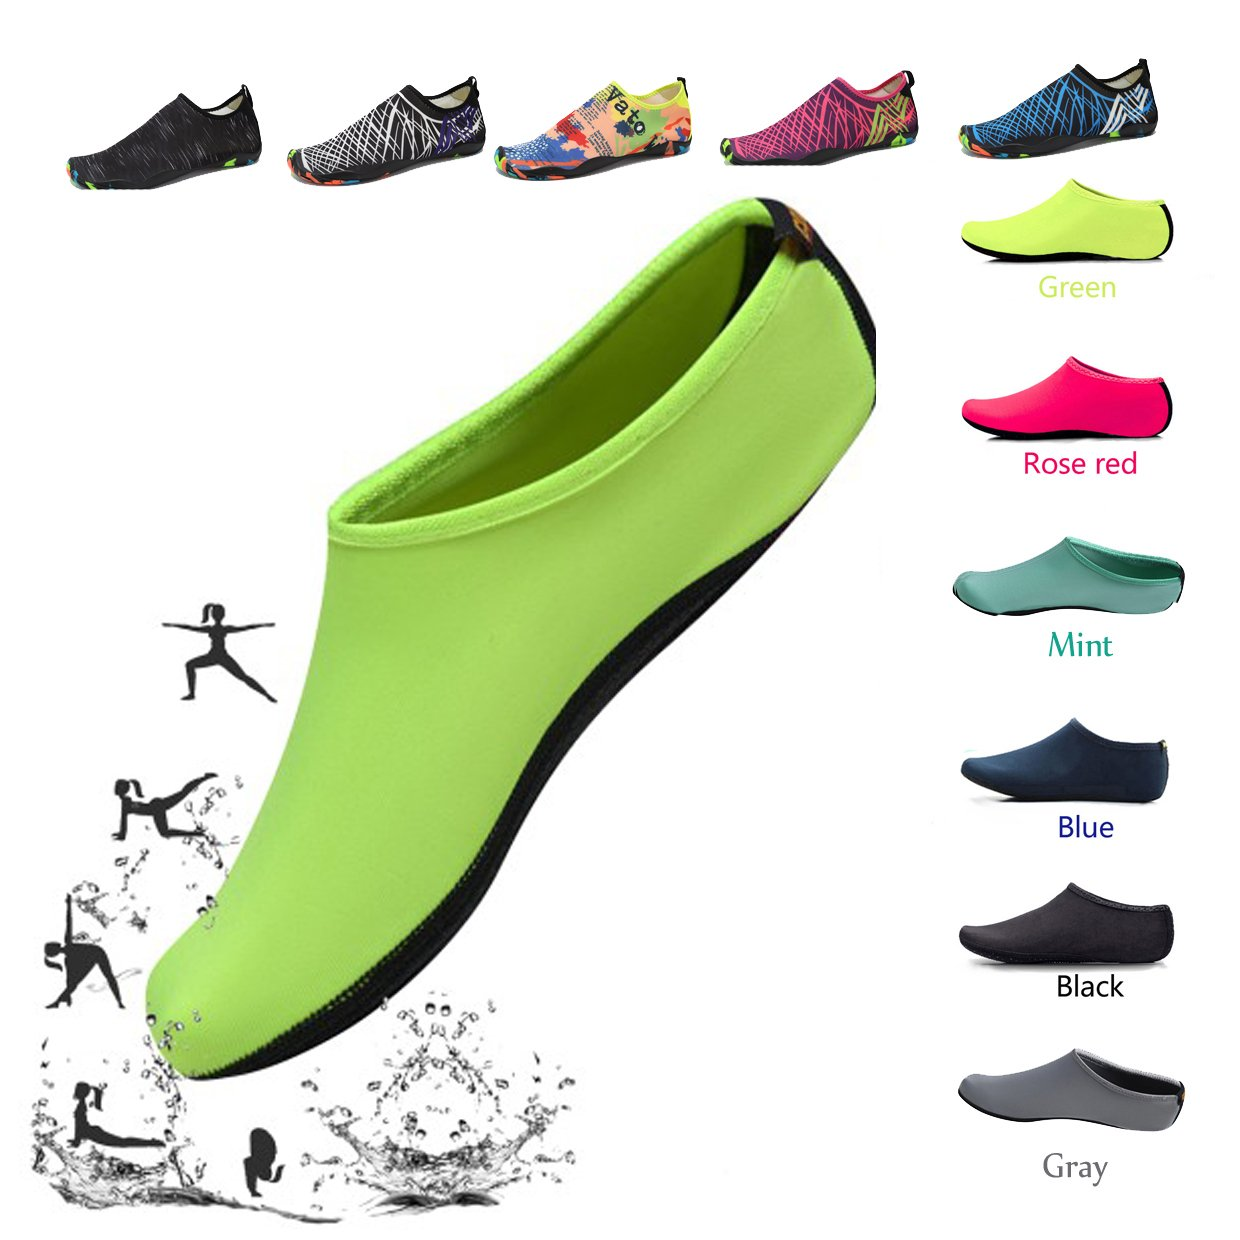 Popular! Convinced Water Shoes Quick Dry Aqua Shoes For Swim Quick Dry Aqua Shoes For Beach Snorkeling Socks Yoga Surf Outdoor Water Sport Men Women Water Shoes (7 Hot Pink)